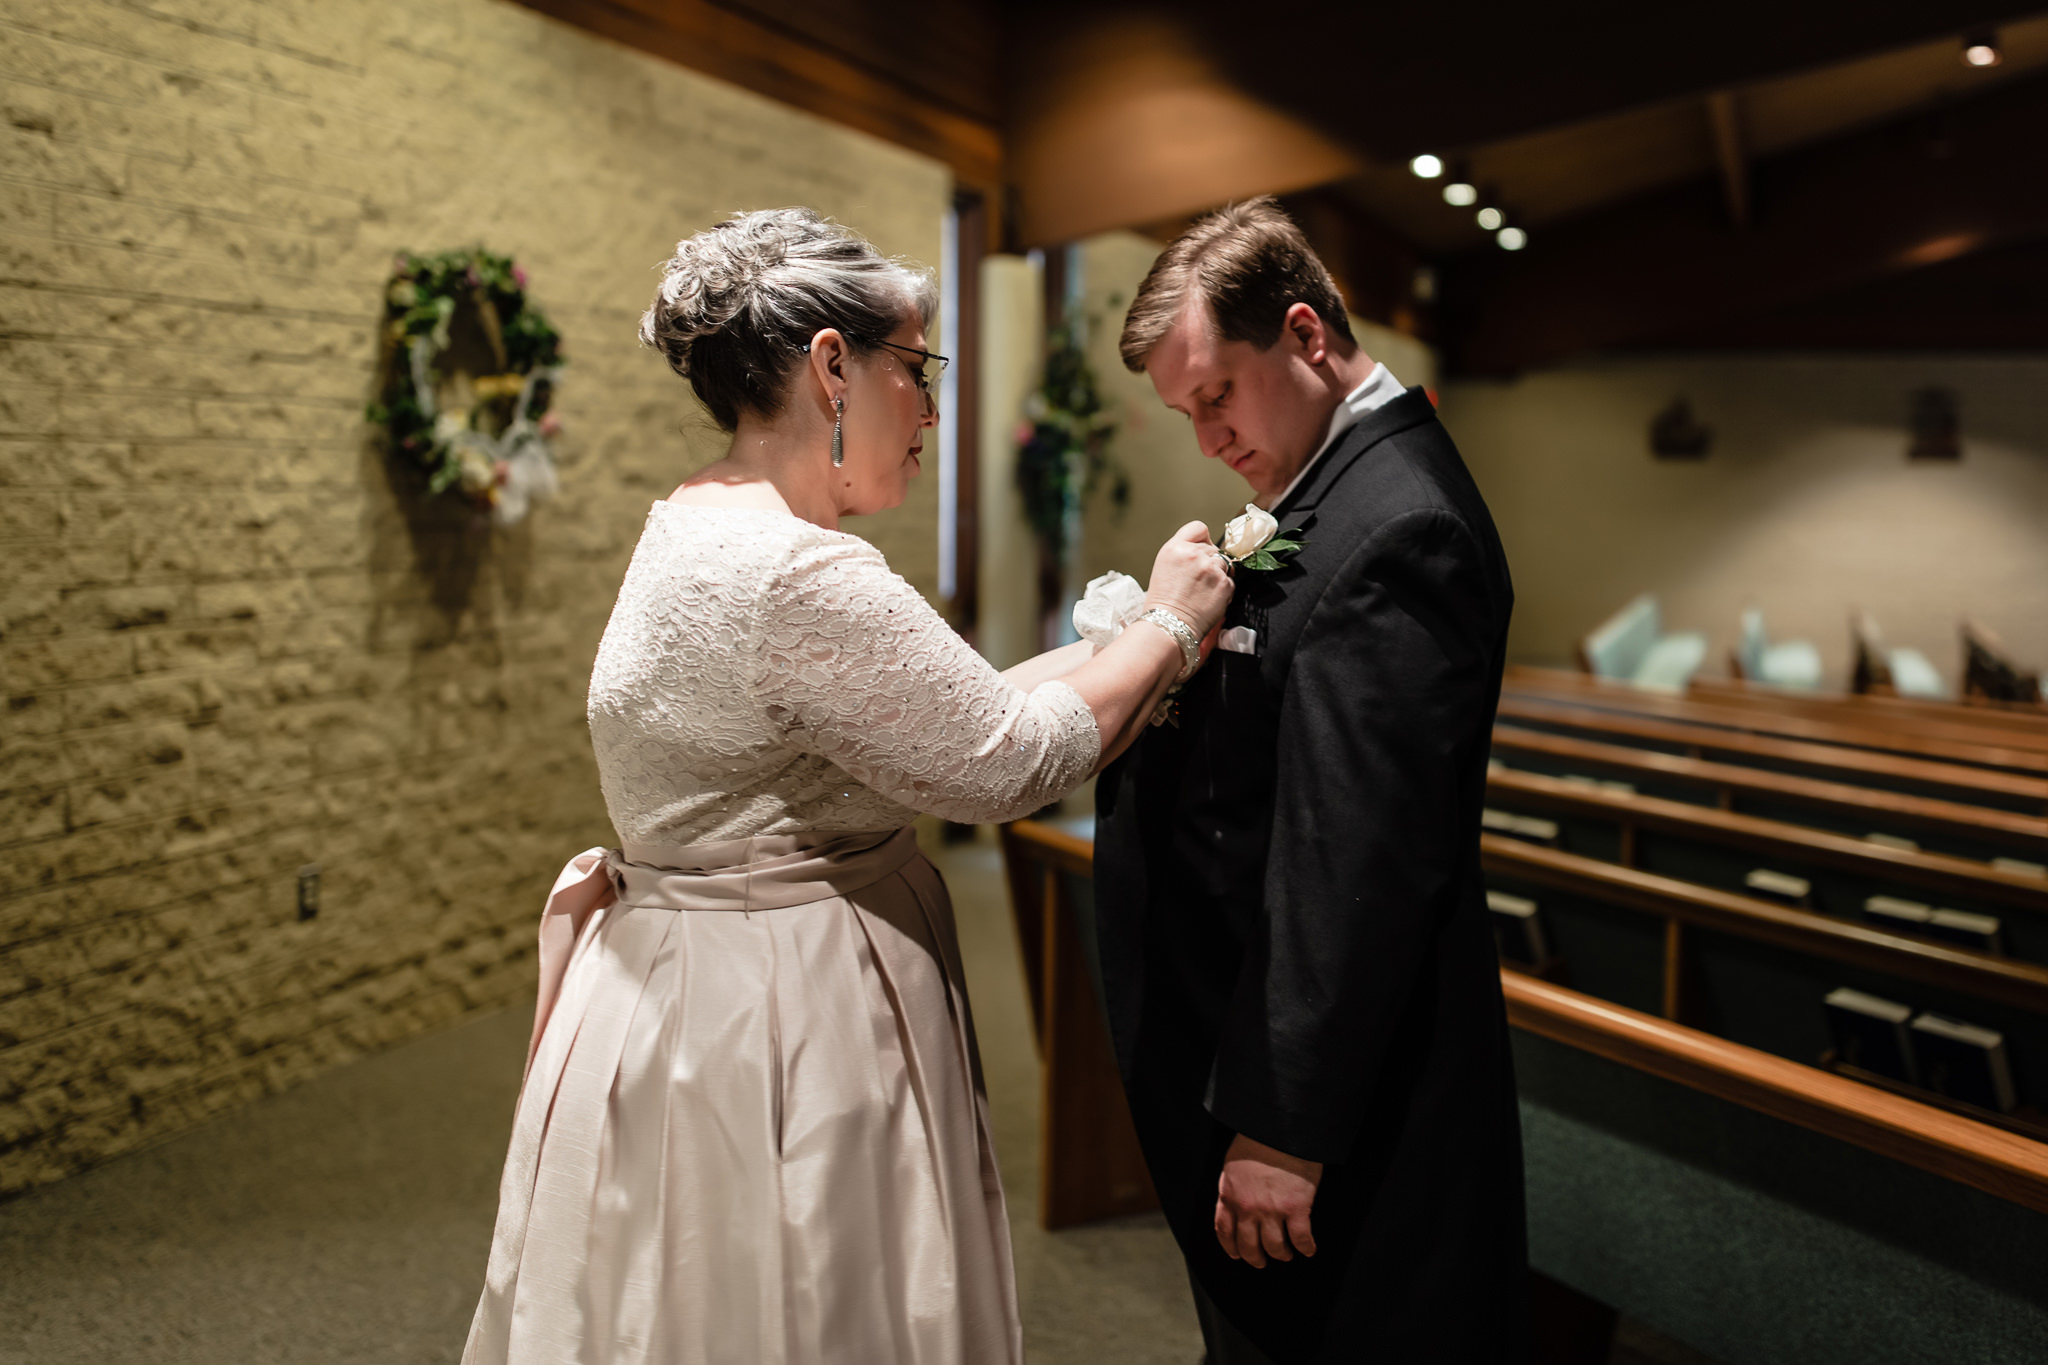 Mother of the groom pins his boutonniere before ceremony at St. John Neumann Church